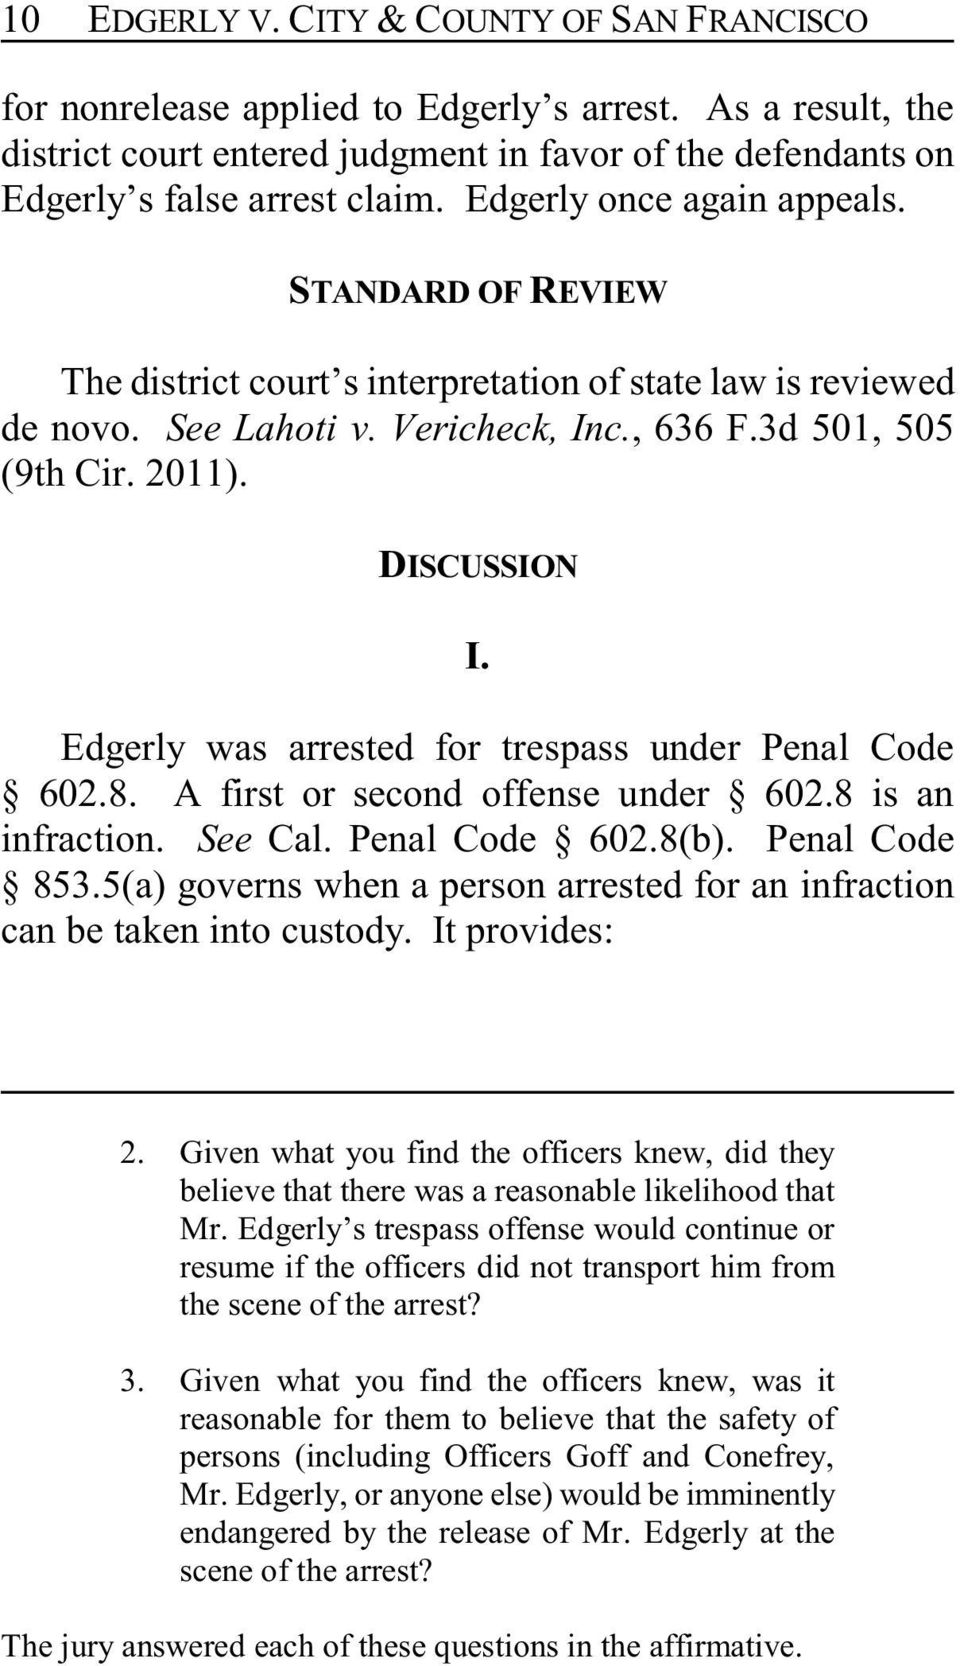 Edgerly was arrested for trespass under Penal Code 602.8. A first or second offense under 602.8 is an infraction. See Cal. Penal Code 602.8(b). Penal Code 853.